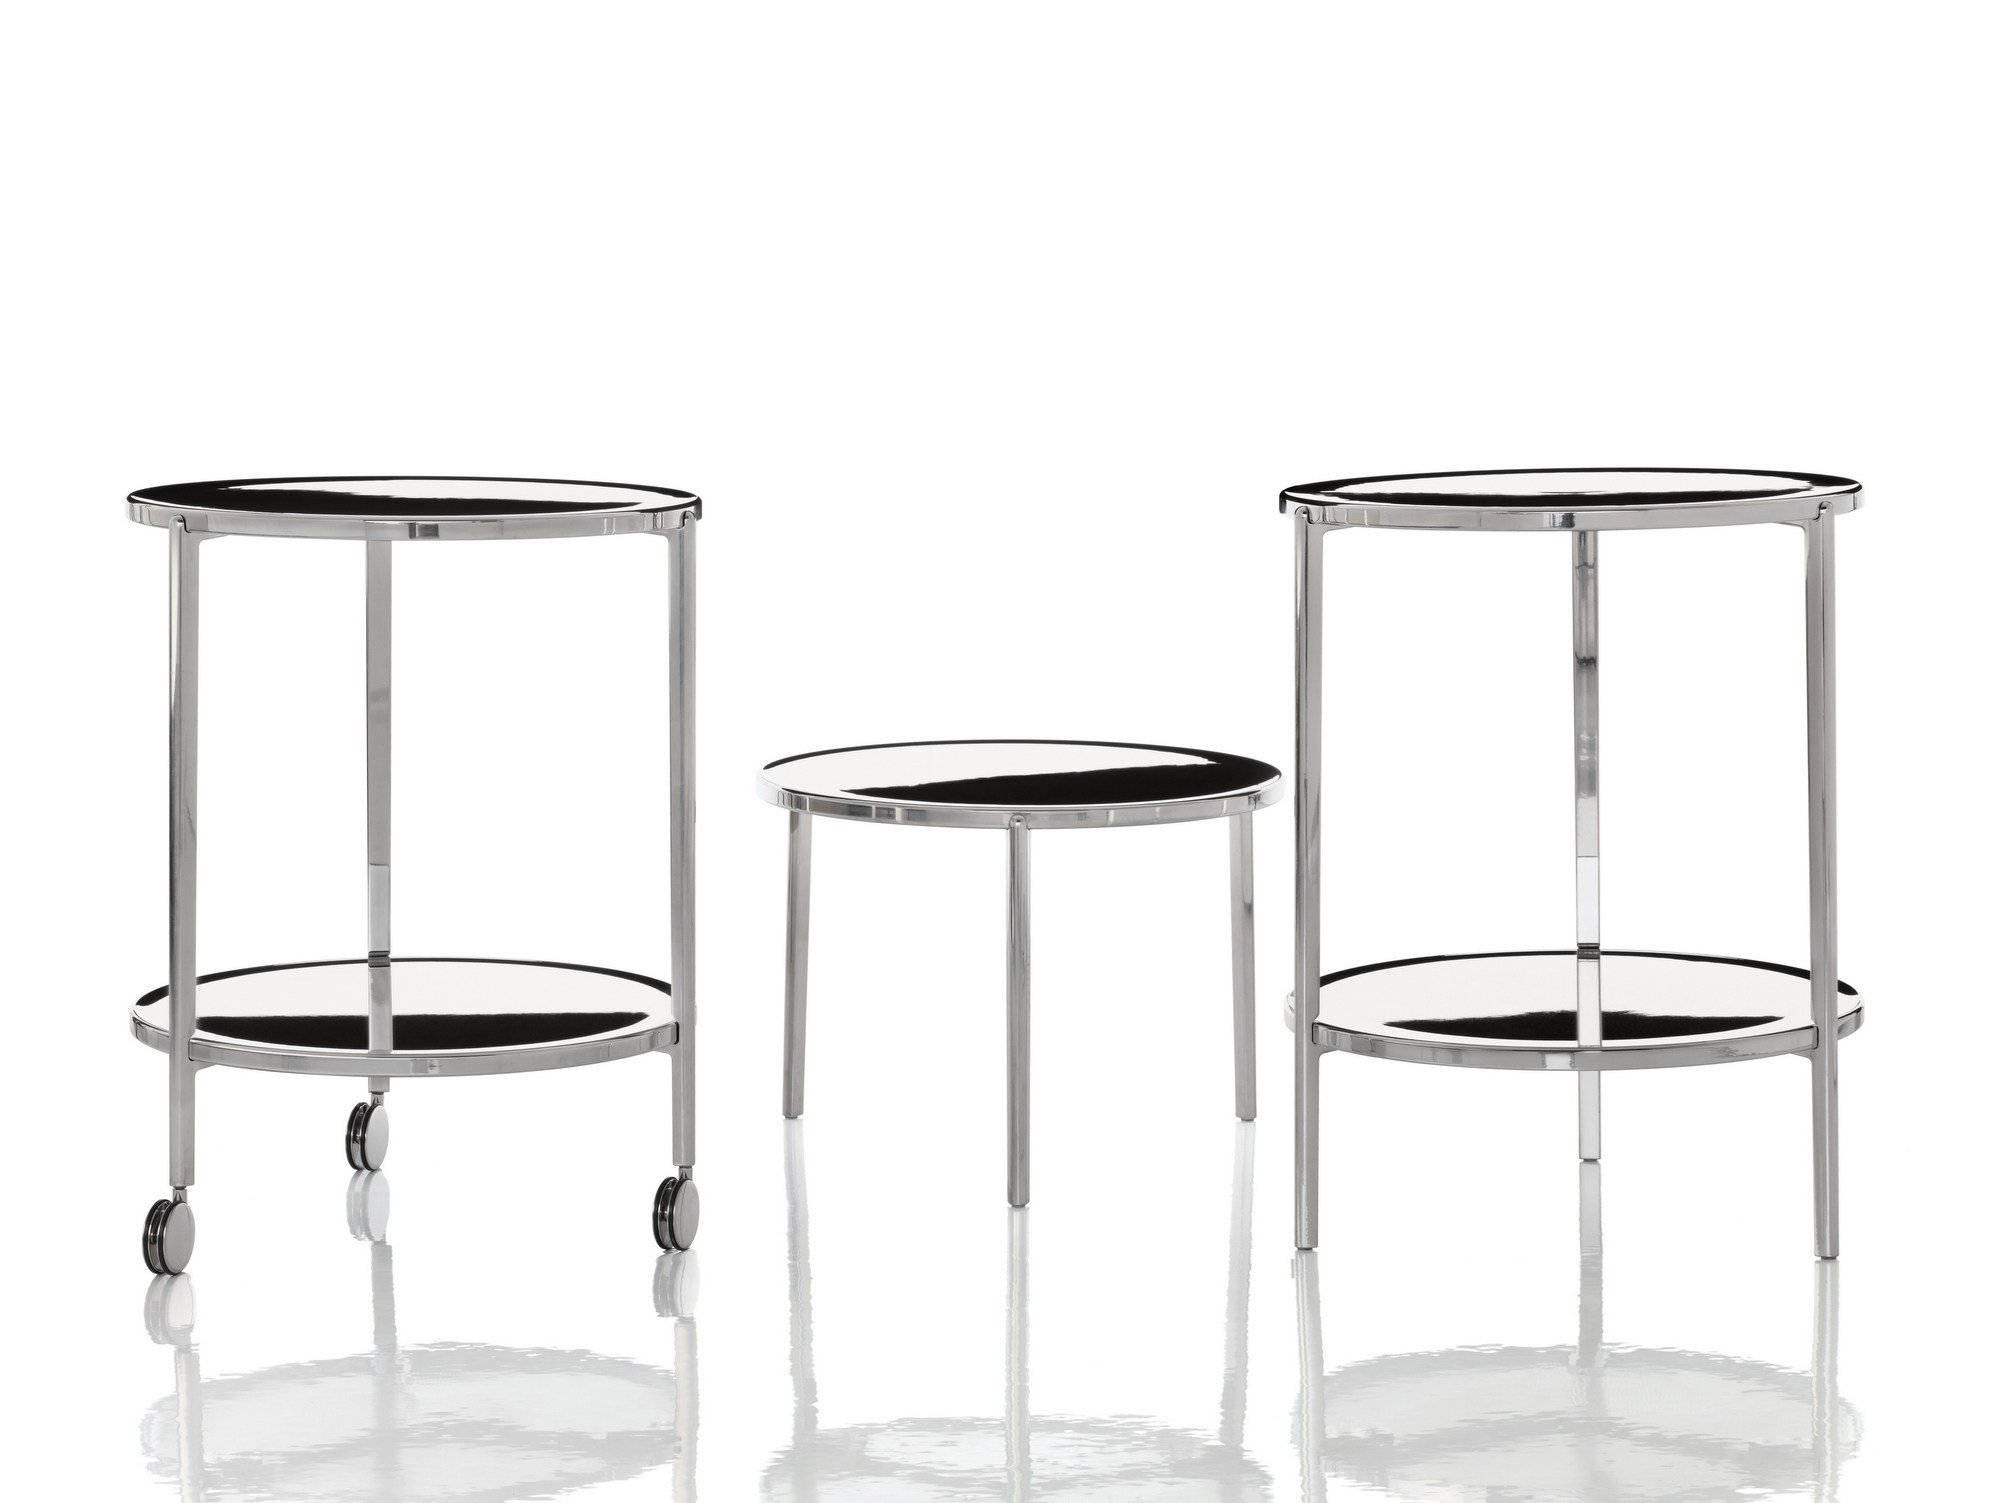 Tambour coffee table with casters by magis design ronan erwan bouroullec Coffee tables with casters